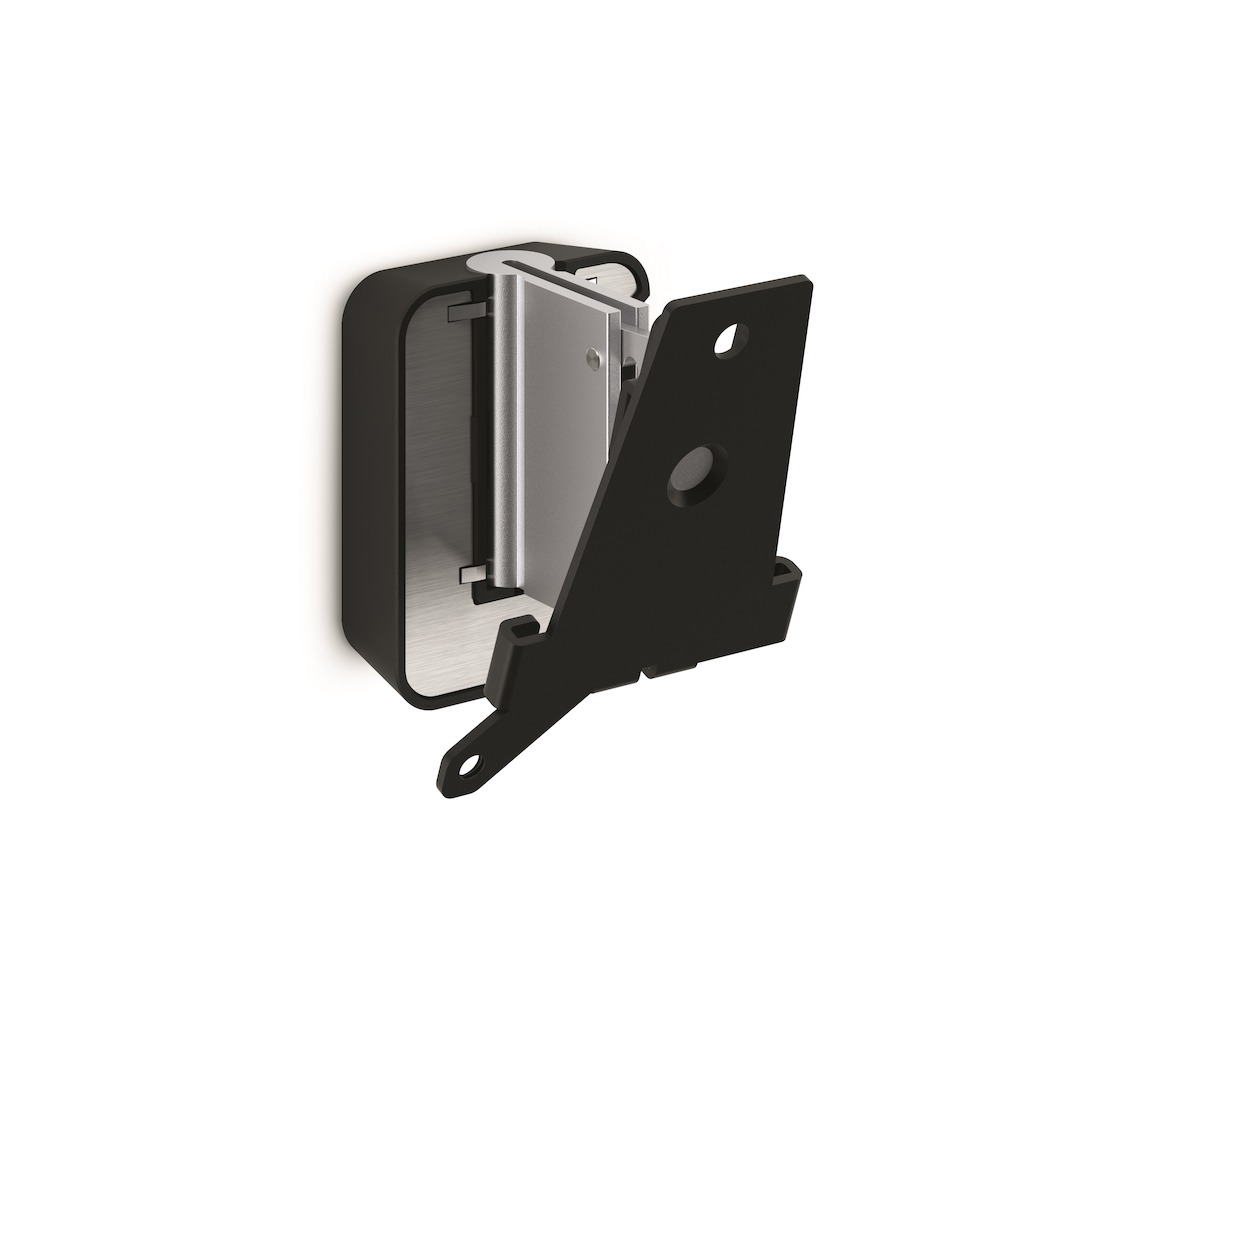 Vogels audio muurbeugel SOUND 5203 HEOS 3 WALL MOUNT zwart